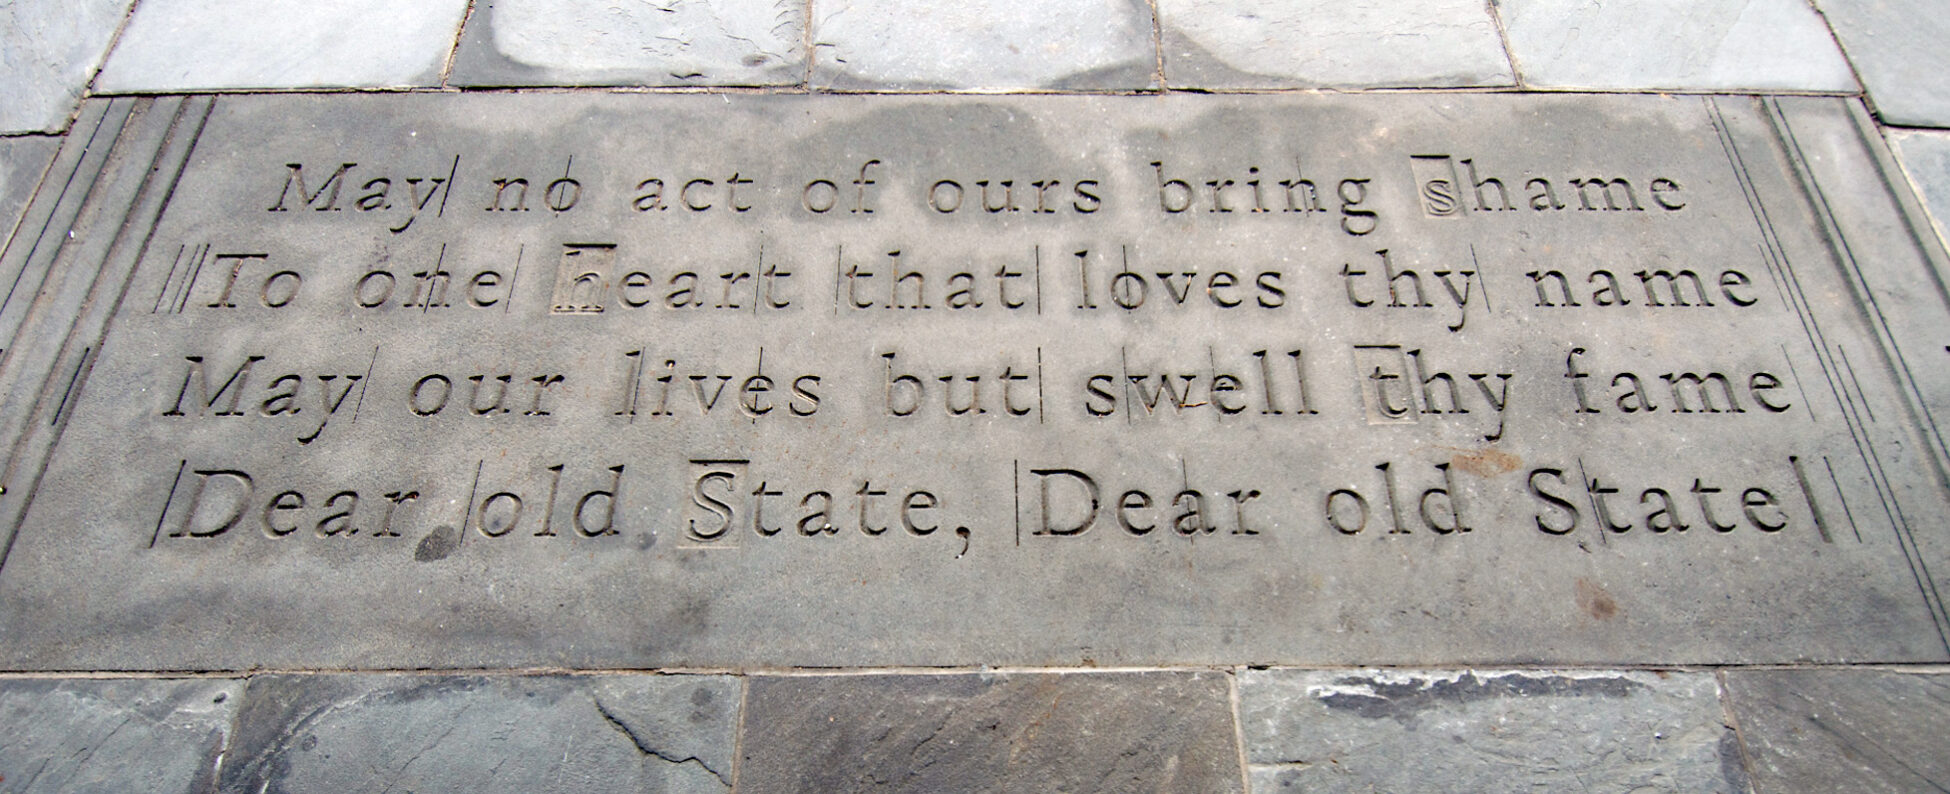 Inscription of the Penn State alma mater.